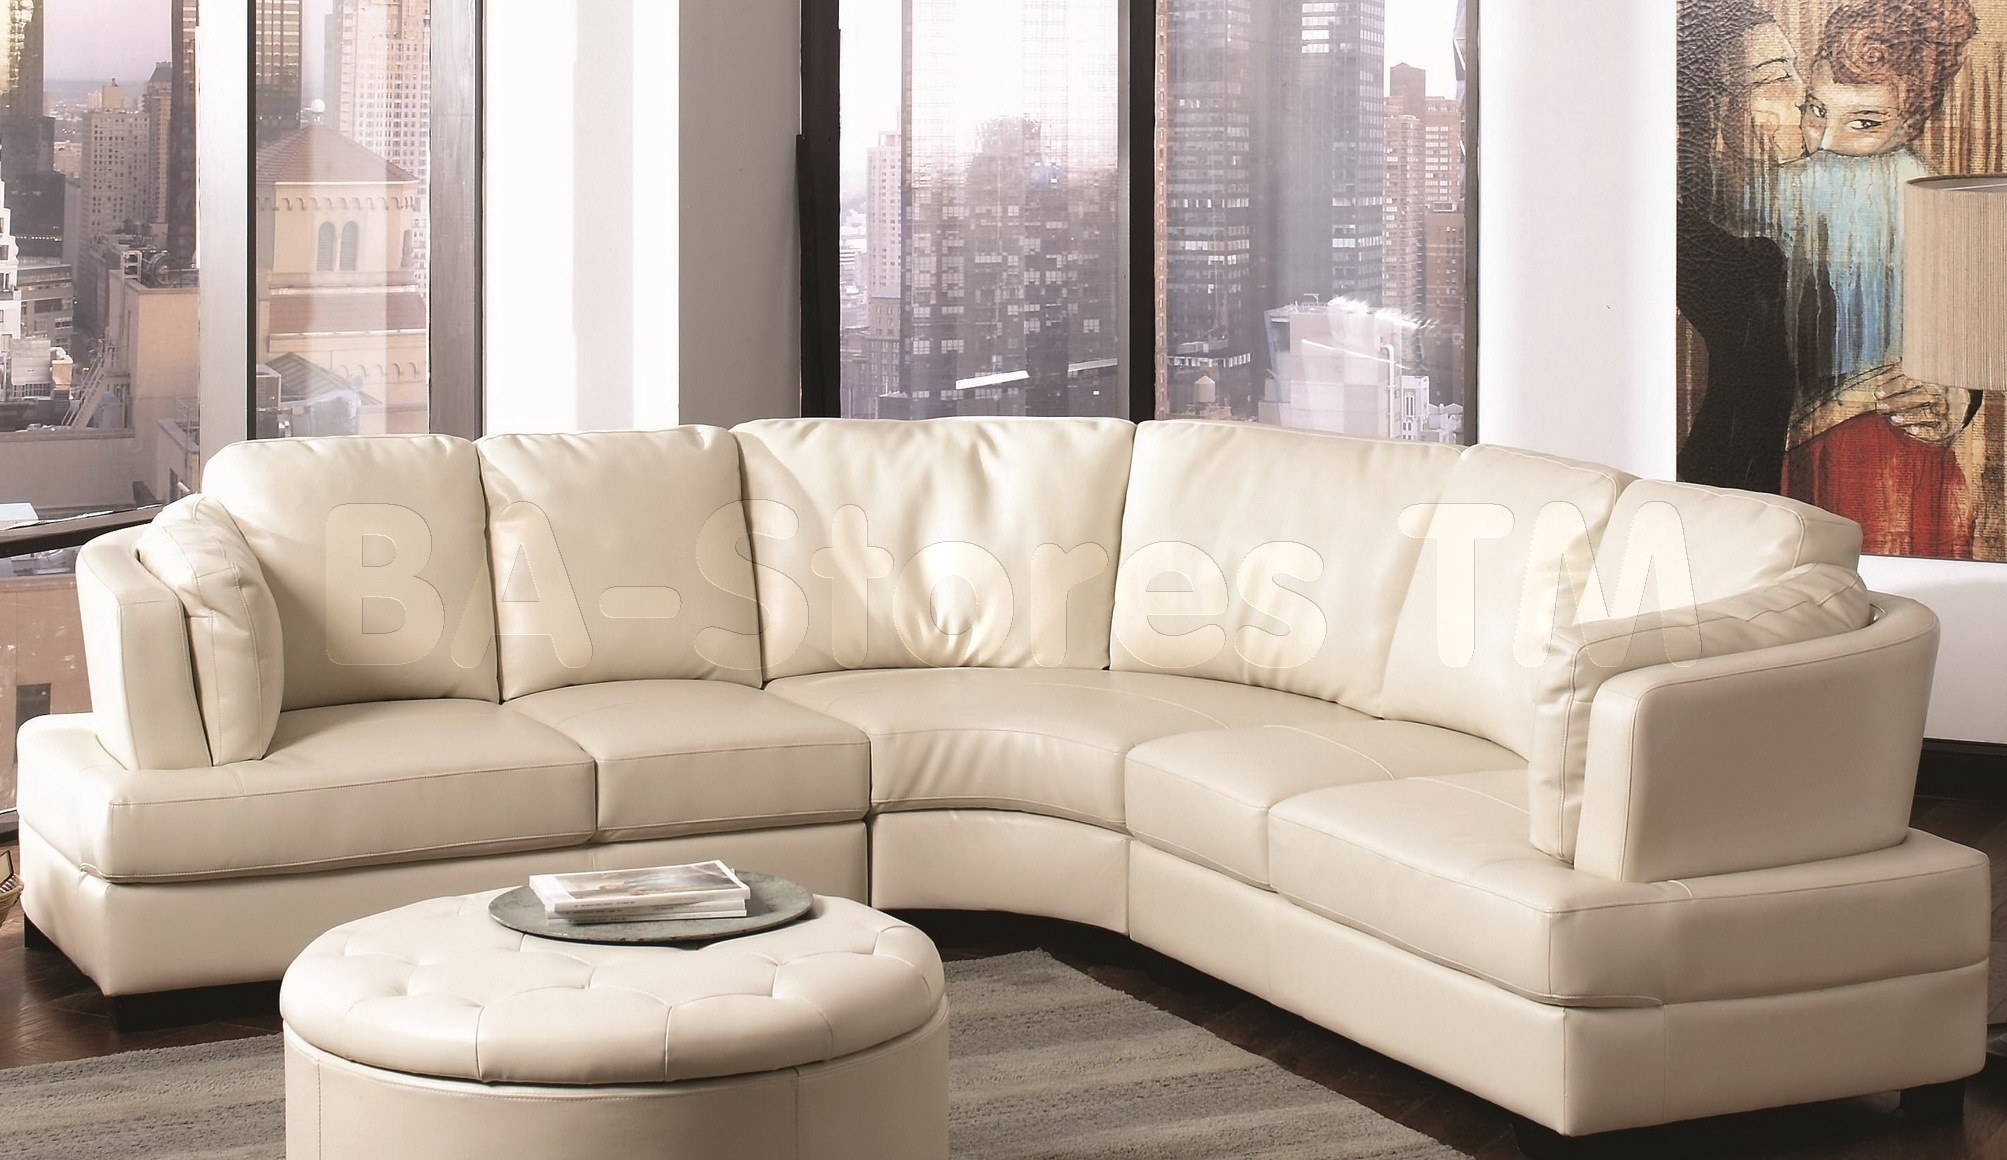 Curved Leather Sectional Sofa • Sectional Sofa Pertaining To Round Sectional Sofas (Image 4 of 10)